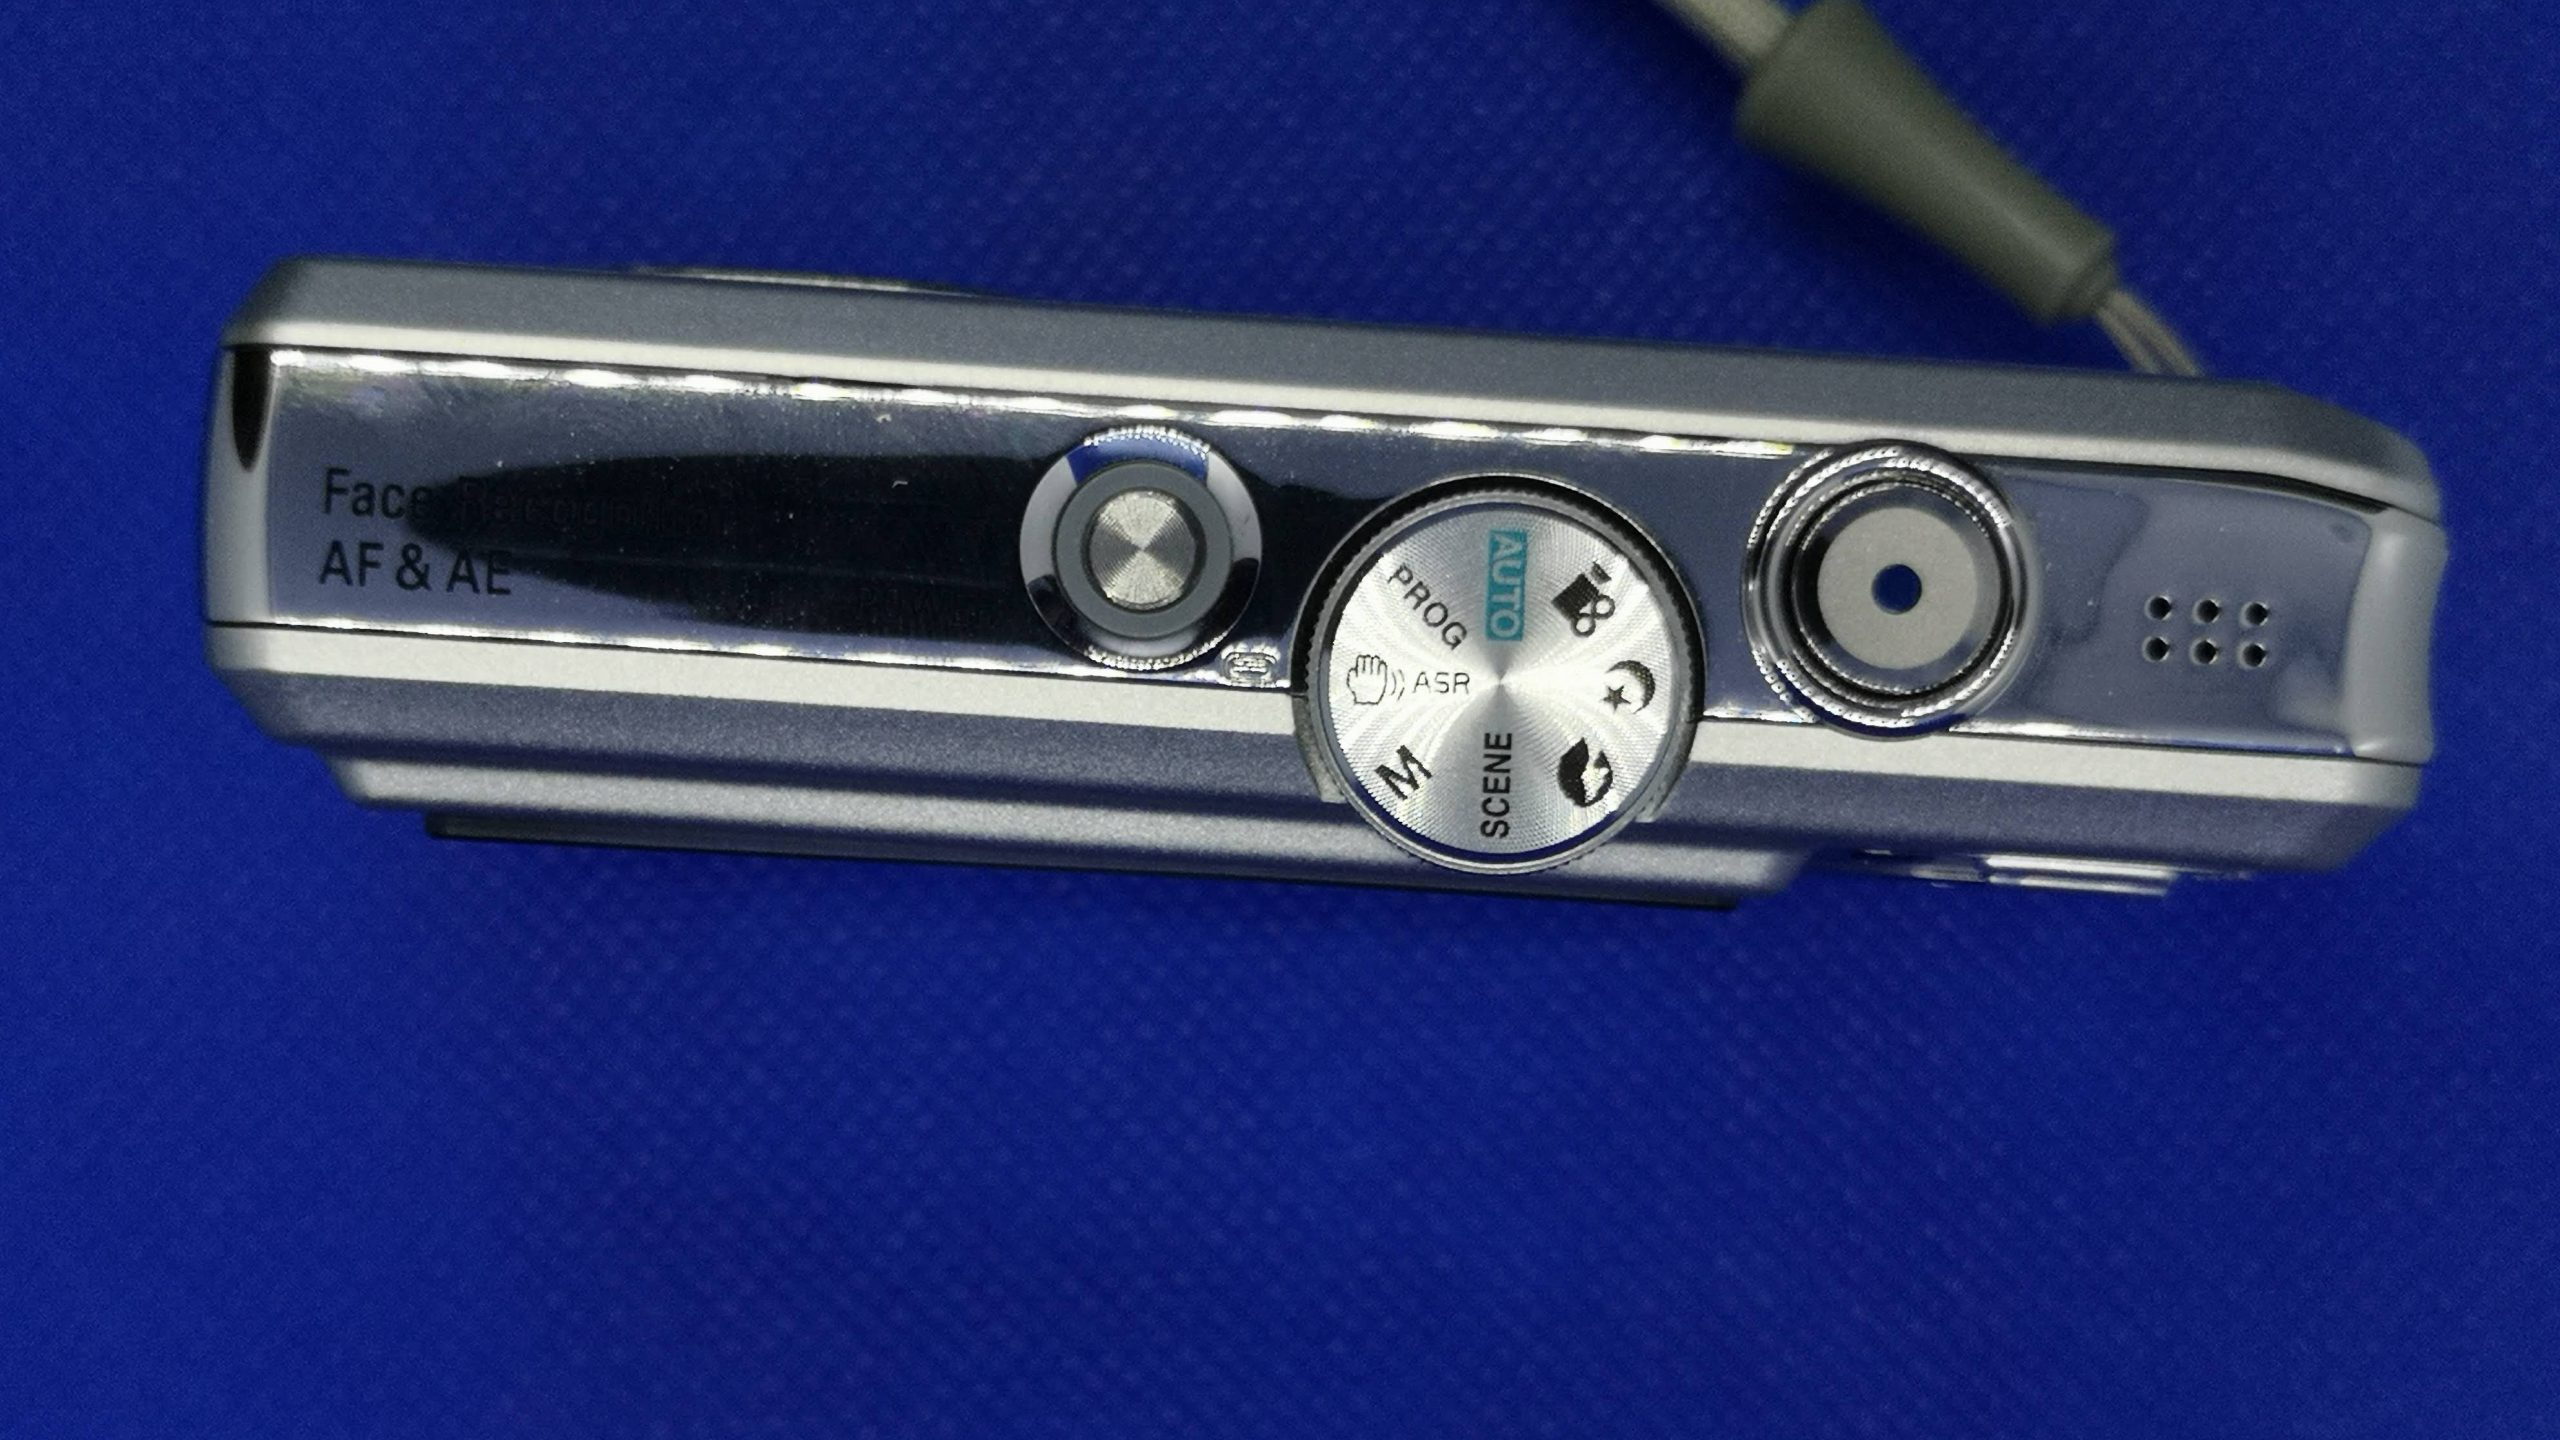 Top plate with on/off (l), mode dial and shutter (r)